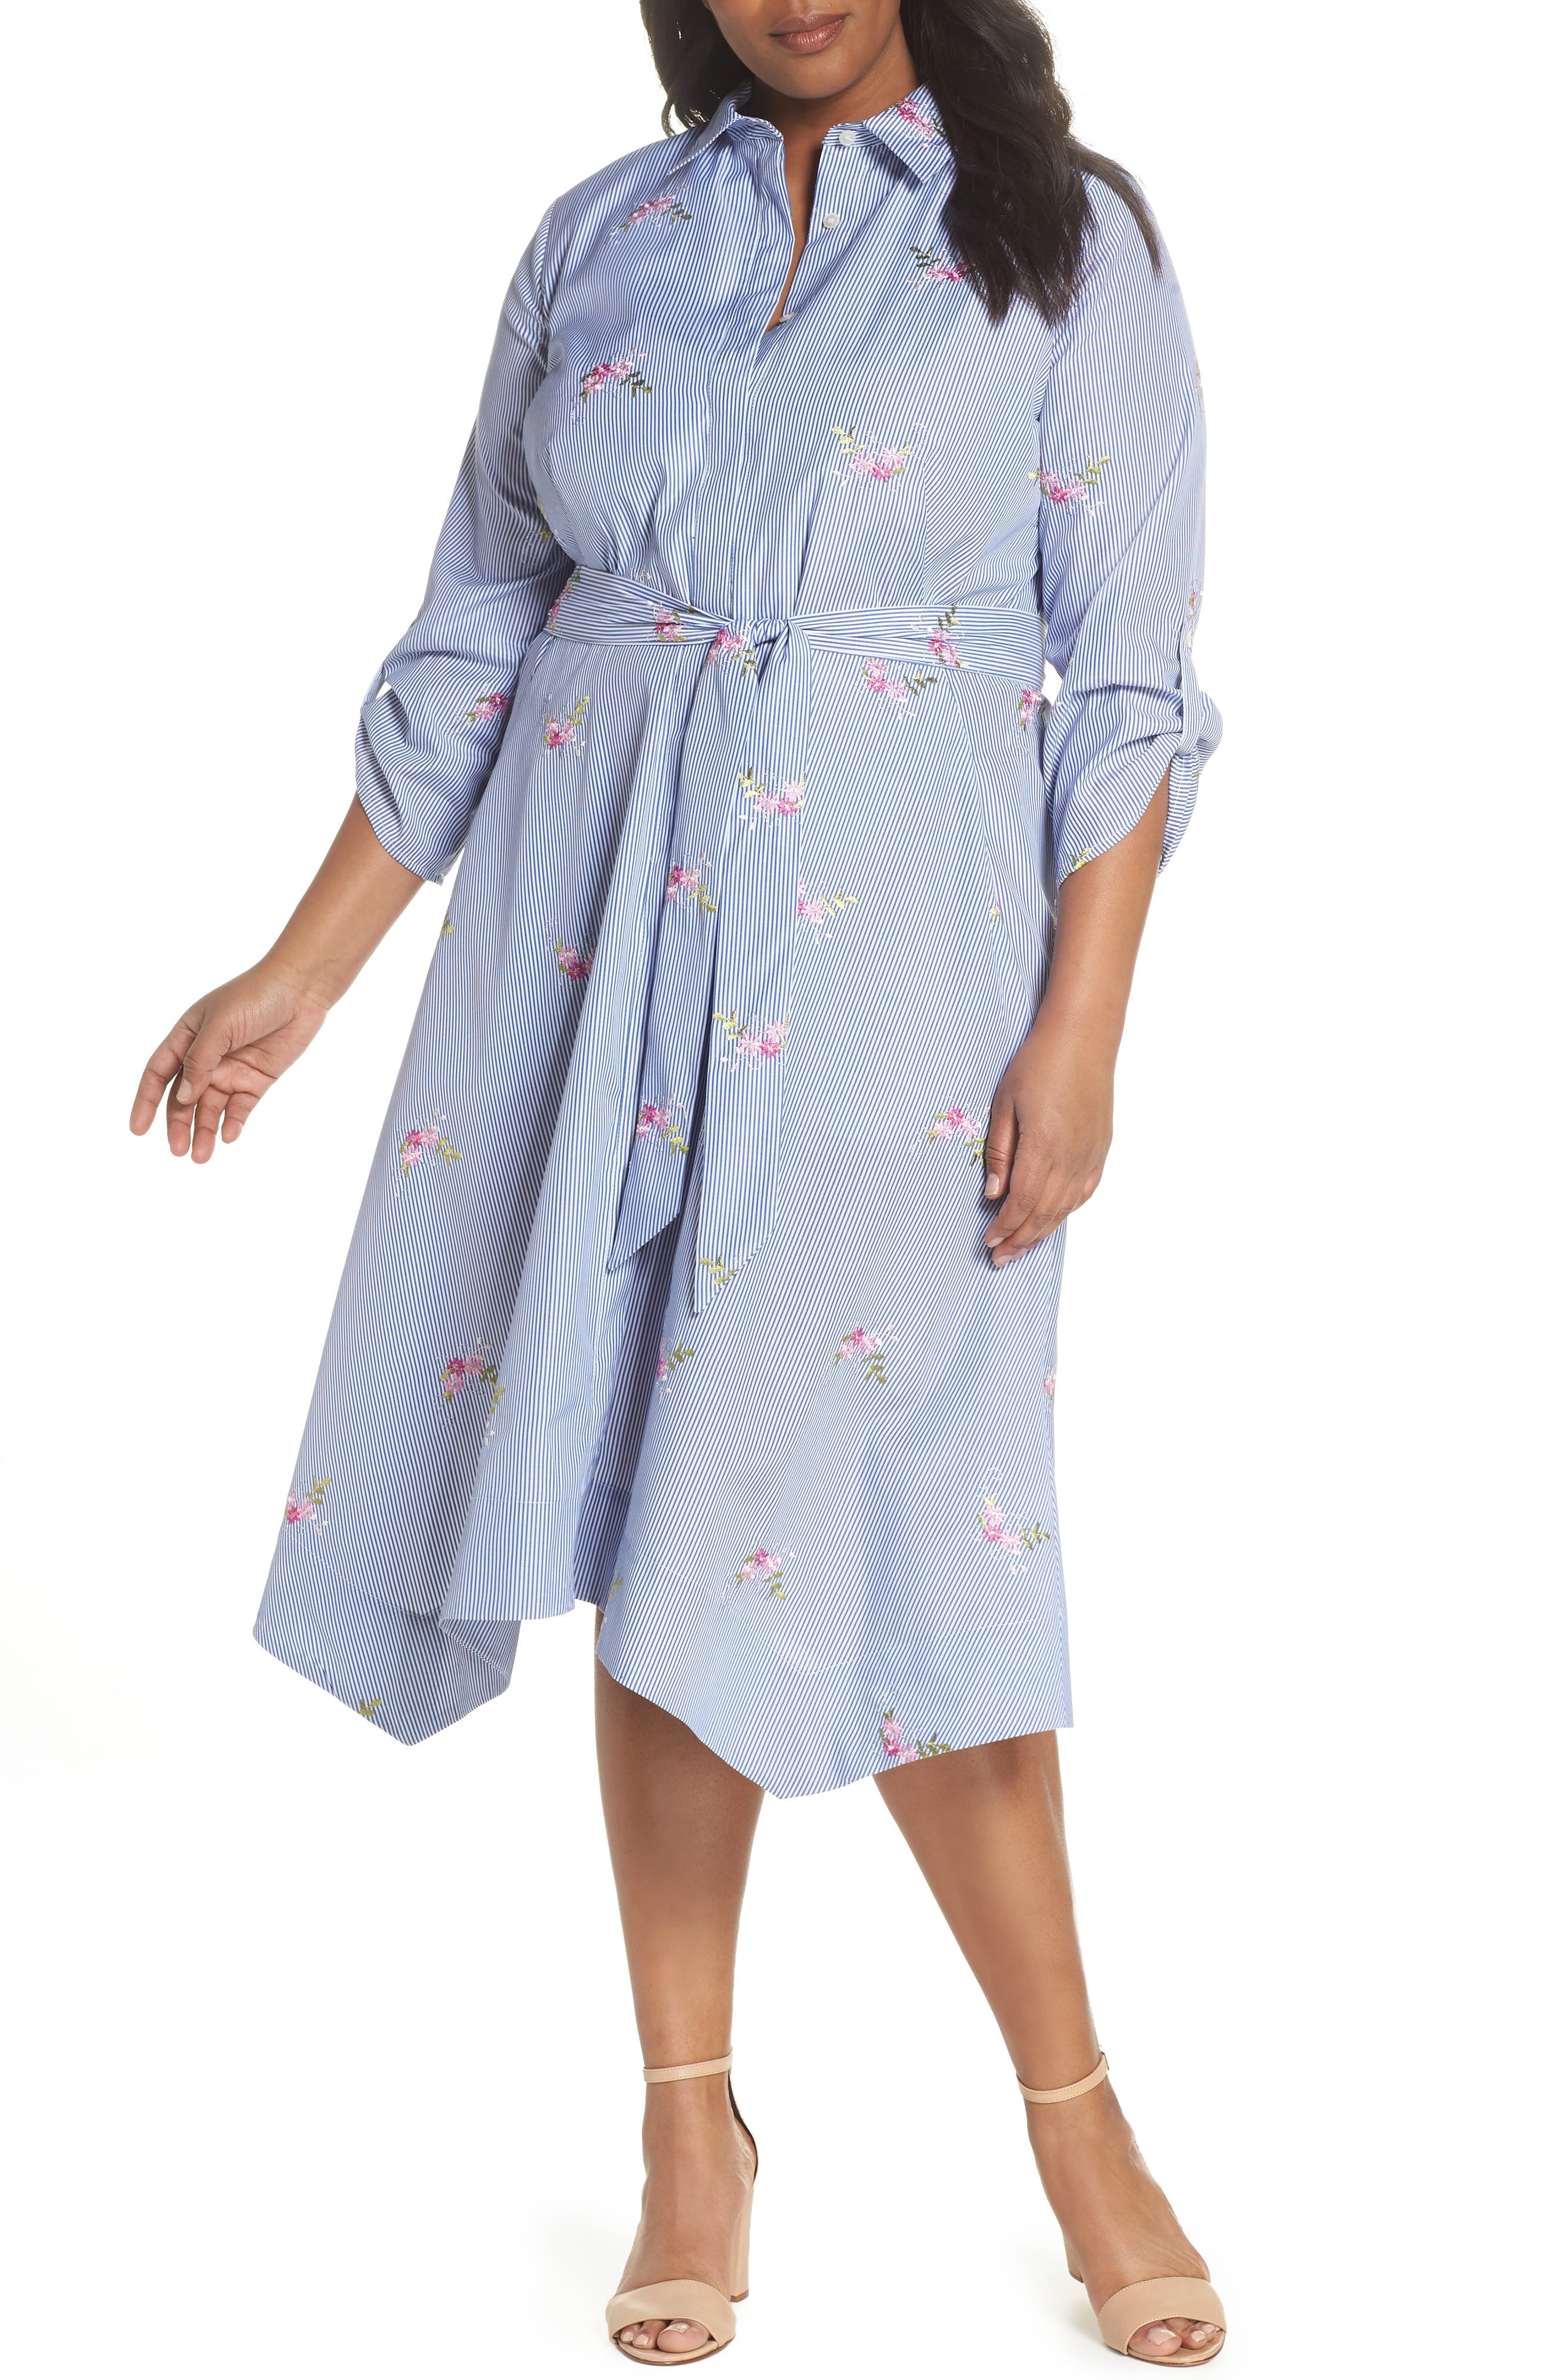 Embroidered Stripe Shirtdress,                             Main thumbnail 1, color,                             NAVY/ WHITE/ PINK